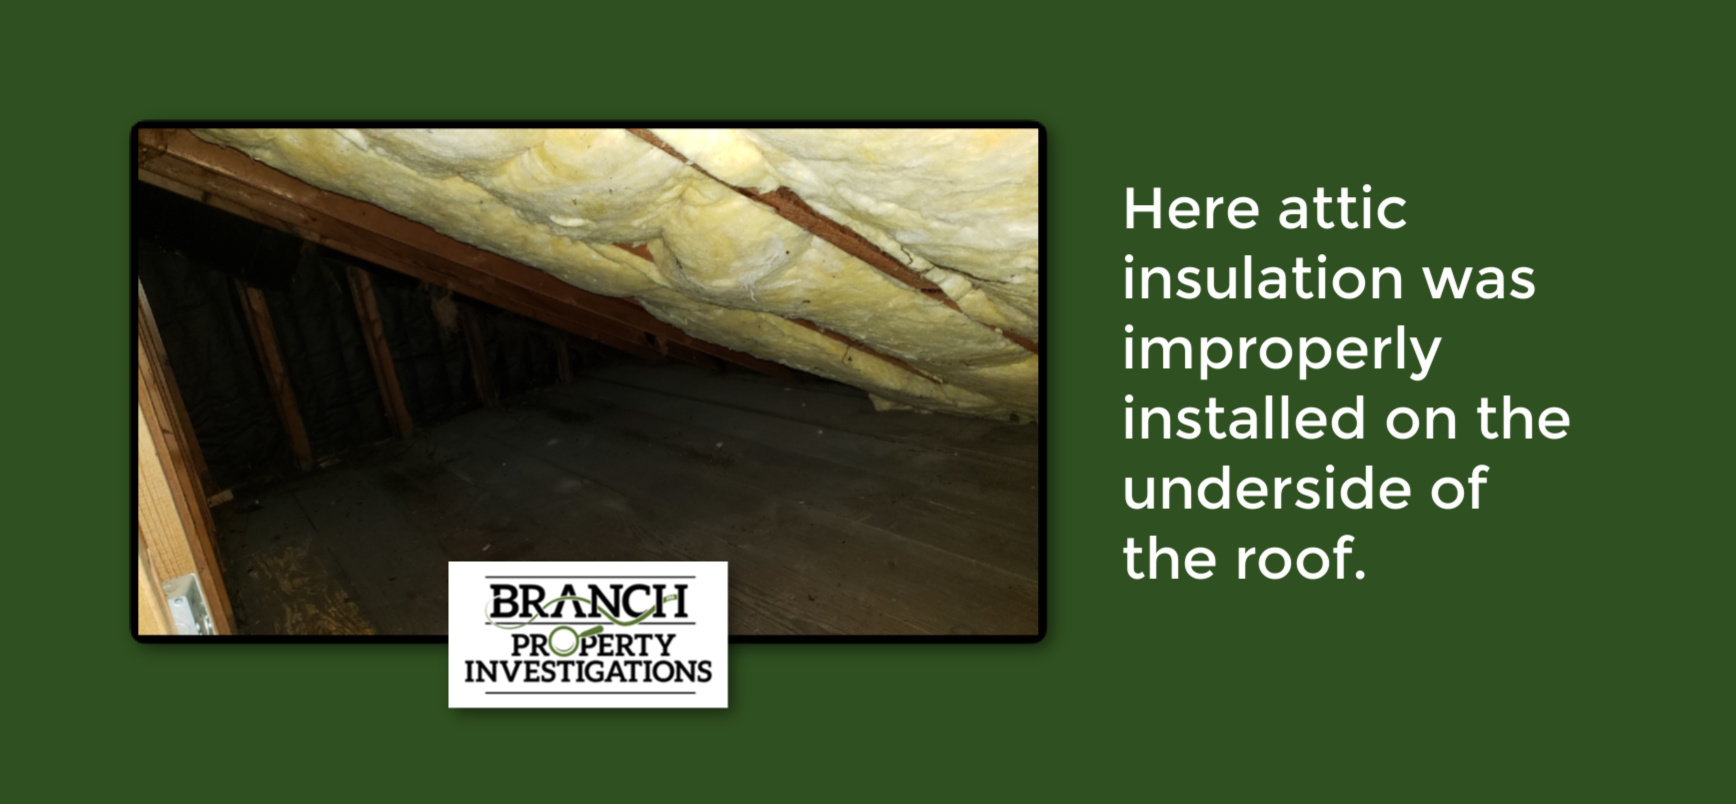 attic insulation, improper attic insulation home inspection